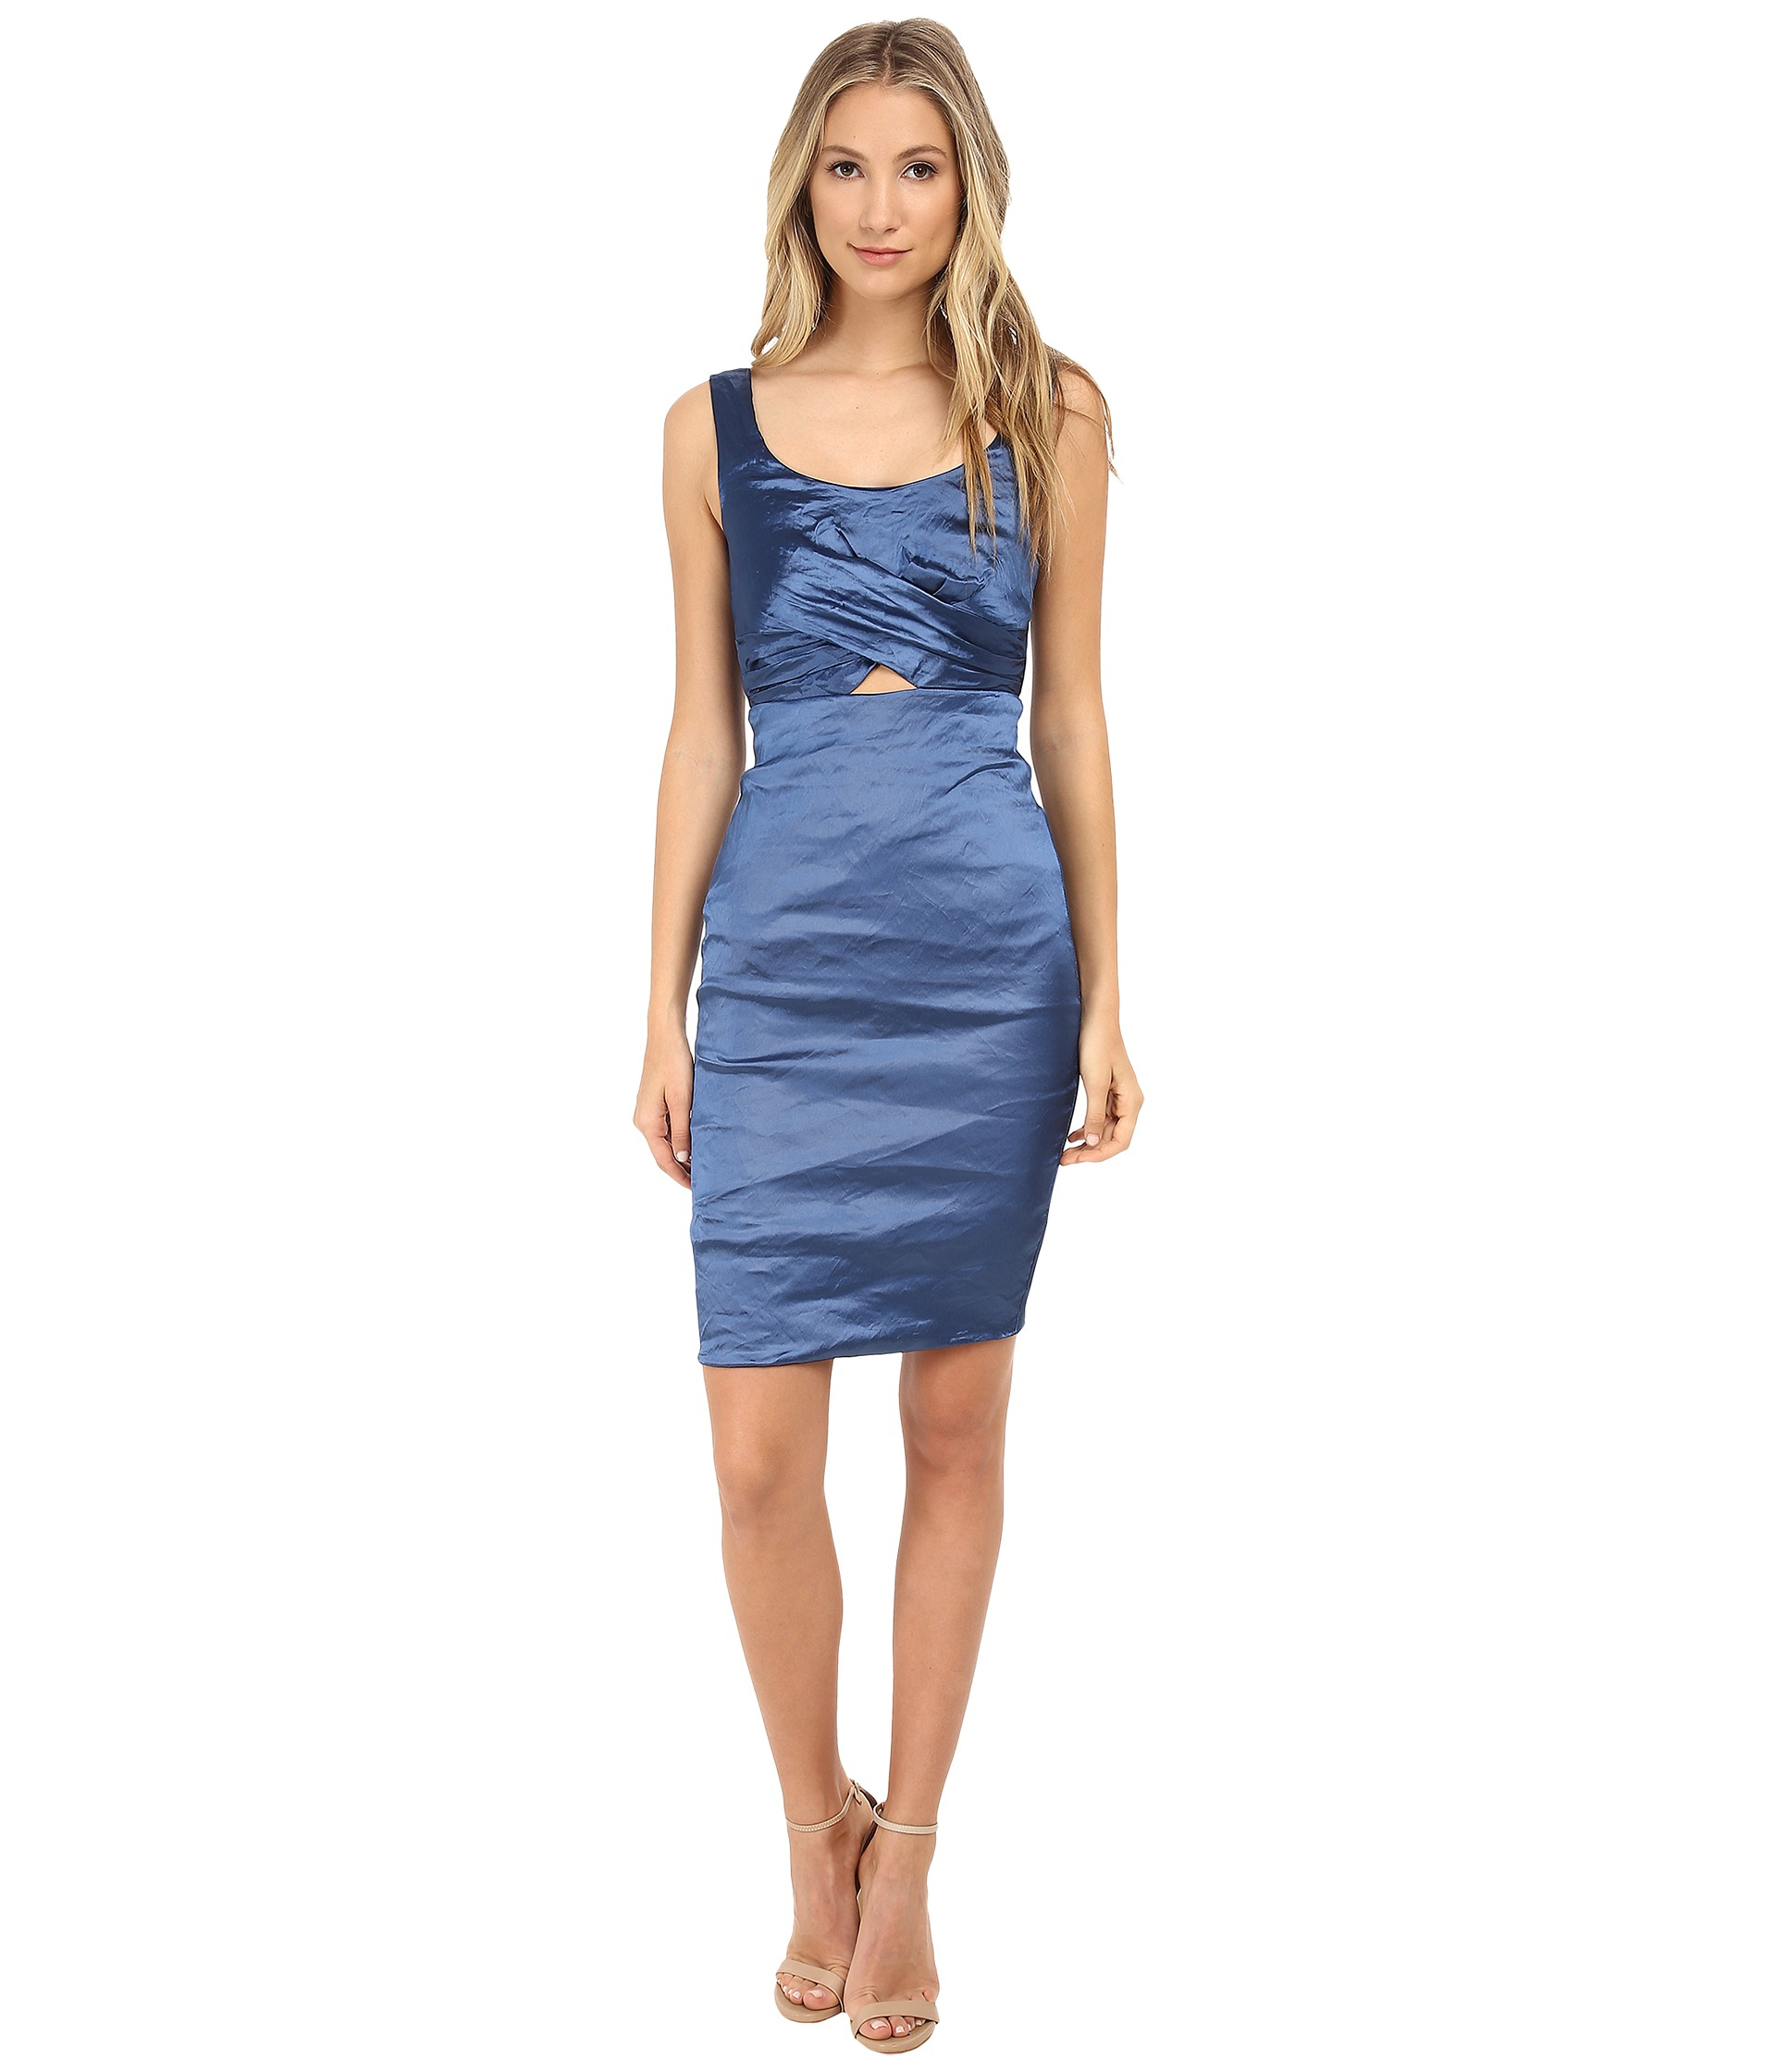 Lyst  Nicole Miller Peekabook Techno Dress in Blue